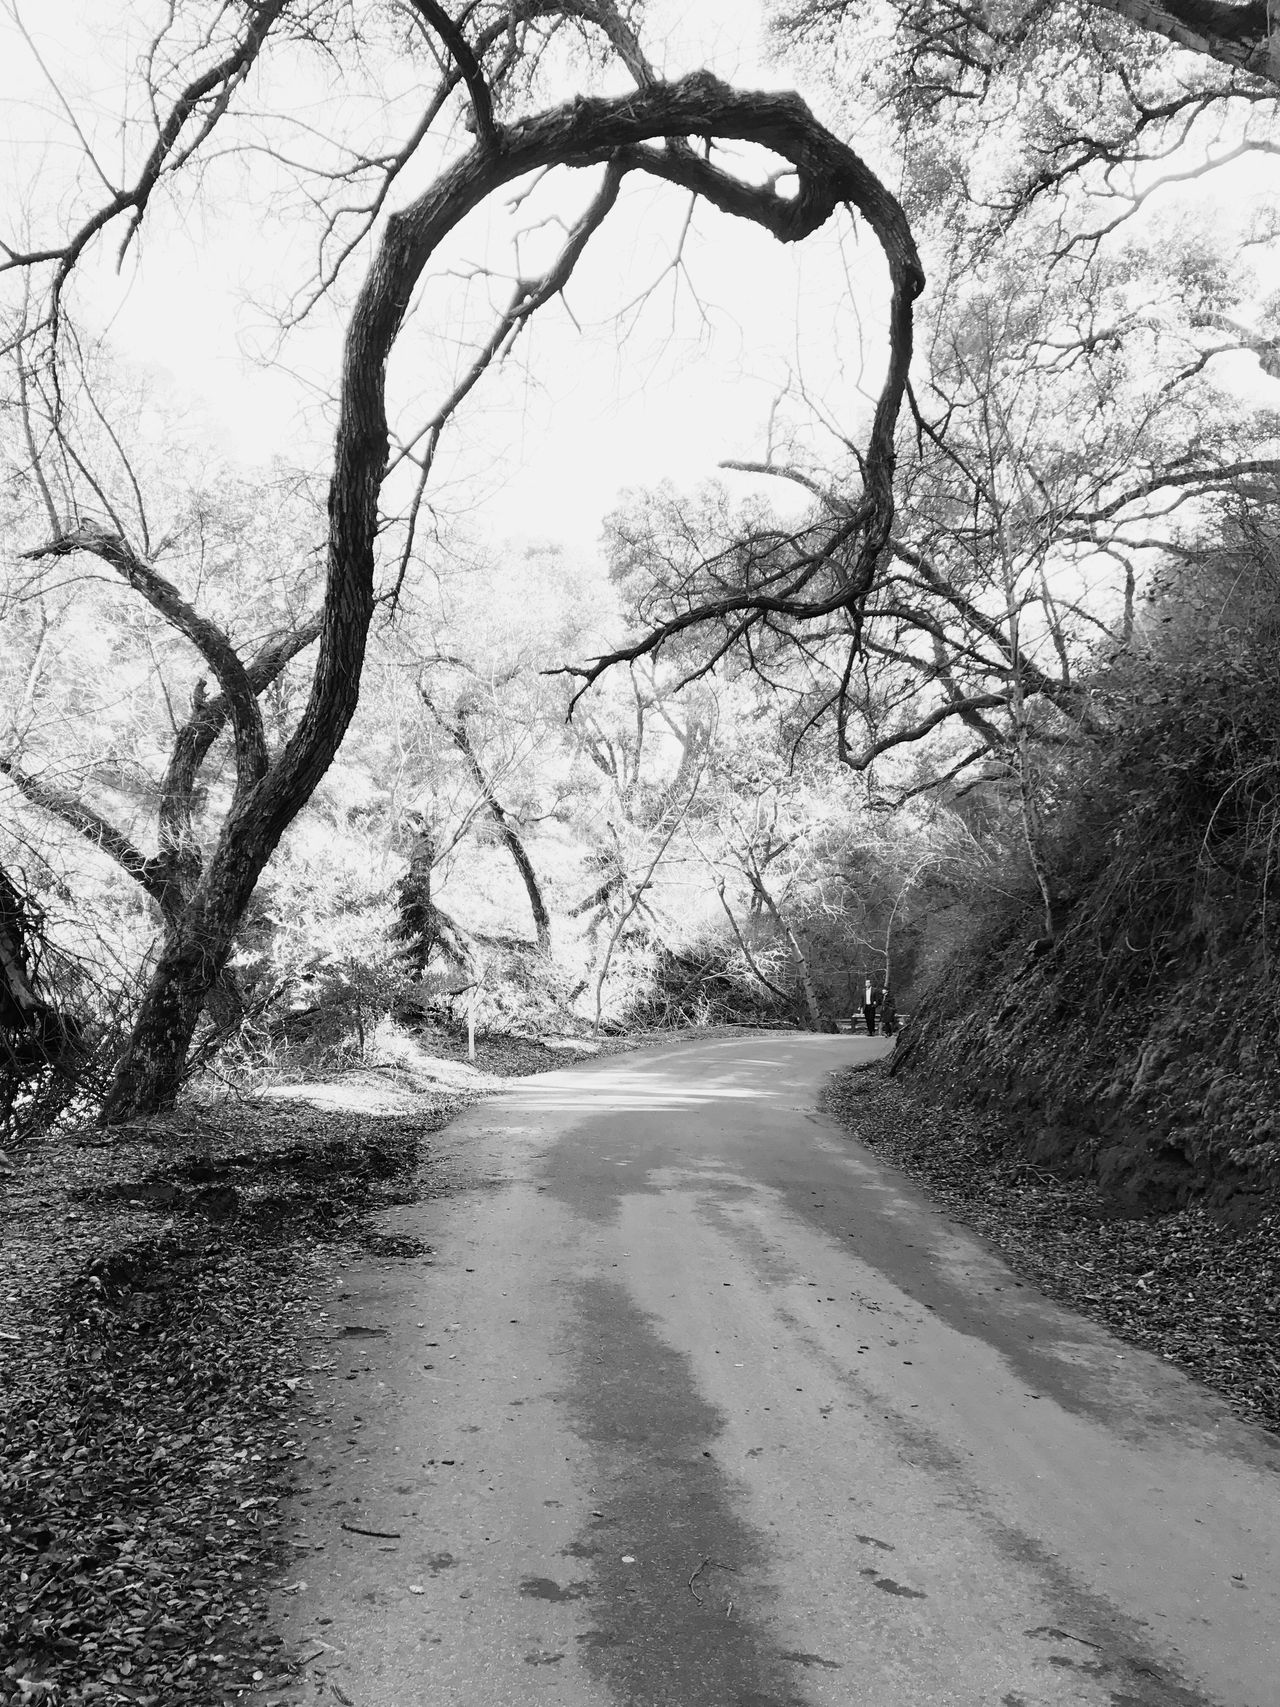 Tree The Way Forward Road Bare Tree Transportation Nature Day Outdoors Branch No People Tranquility Scenics Beauty In Nature Passing Sky